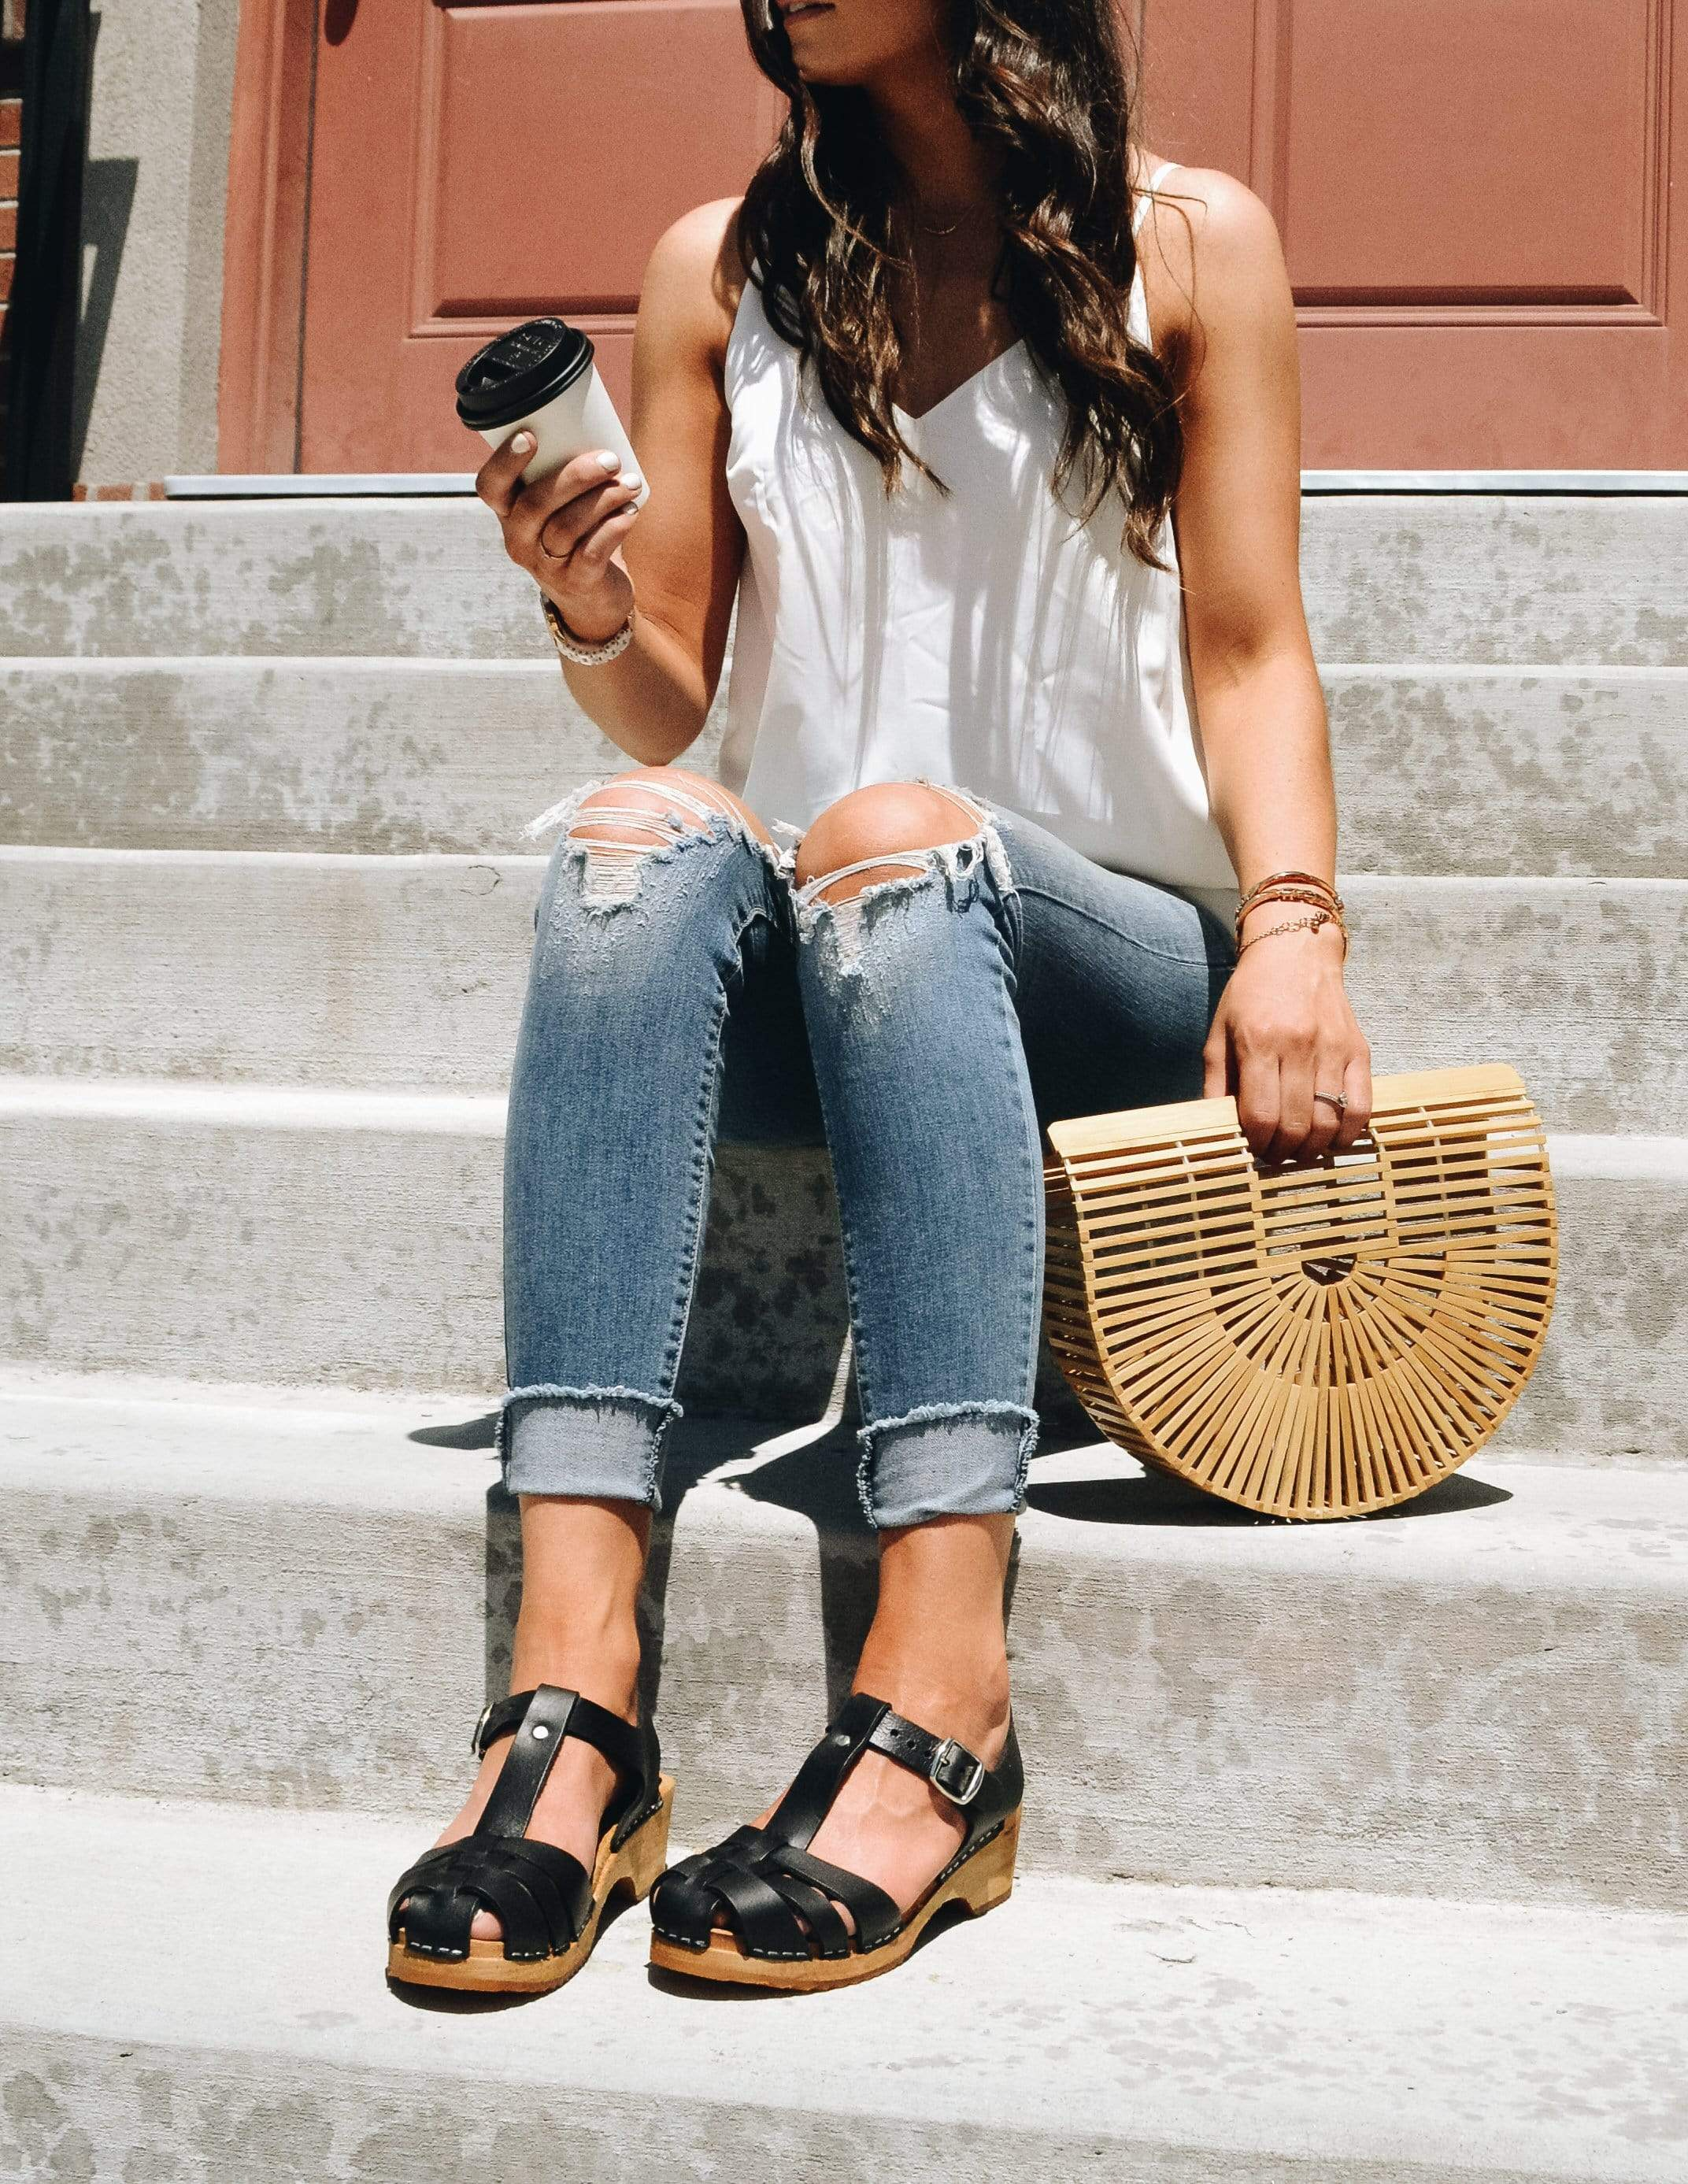 Model sitting outside holding coffee and bag wearing tank, denim and clogs